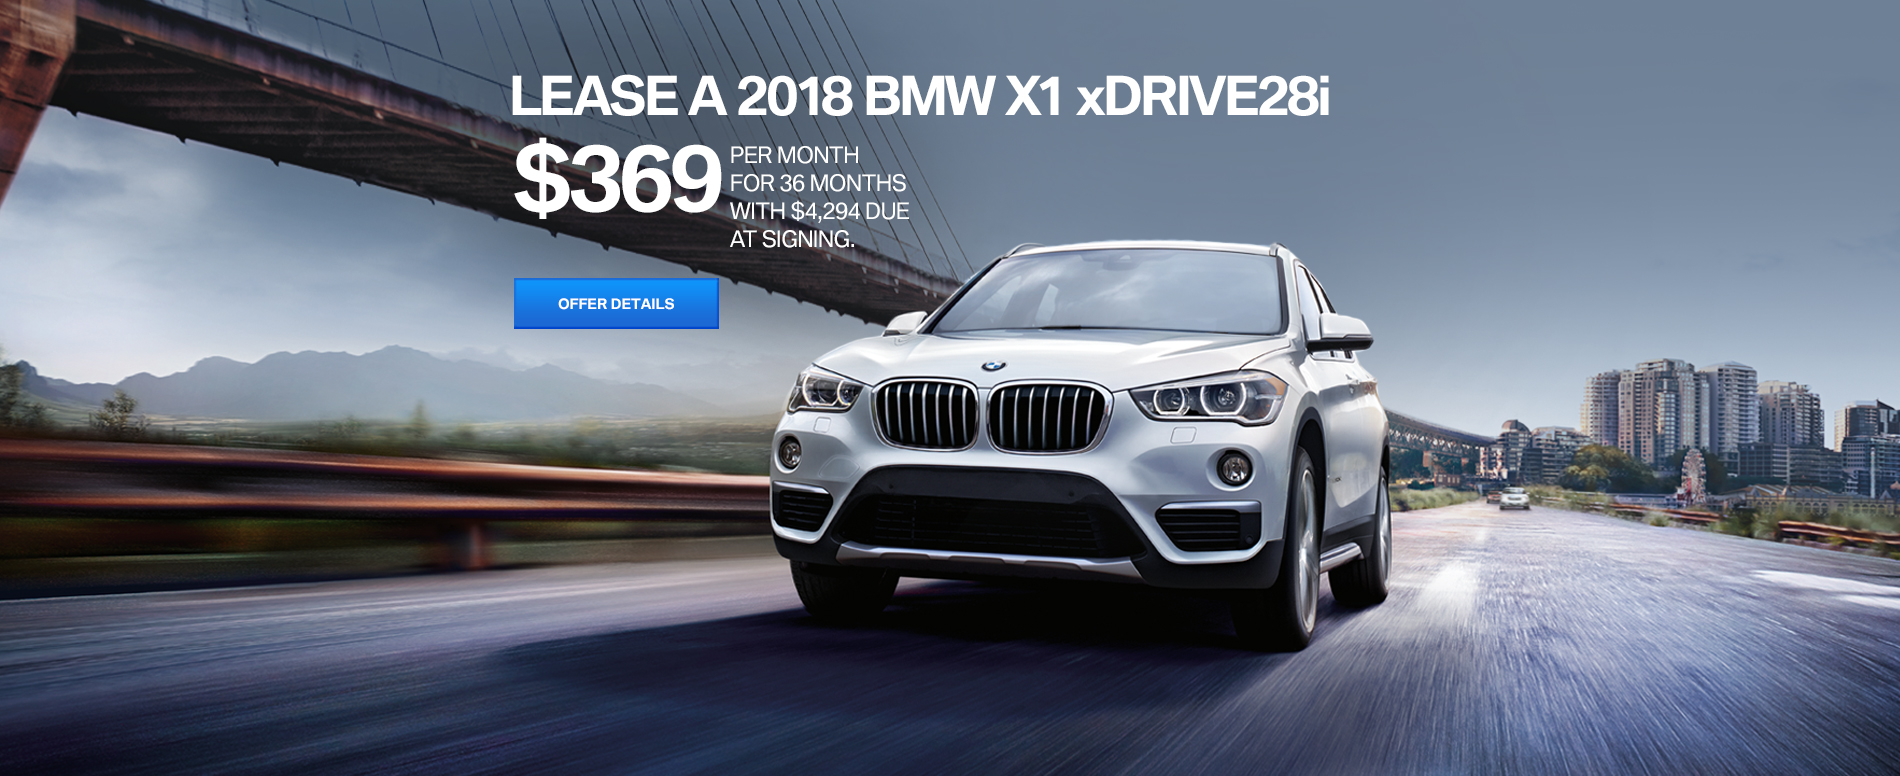 LEASE A 2018 BMW X1 xDRIVE28i FOR $369 A MONTH FOR 36 MONTHS WIT